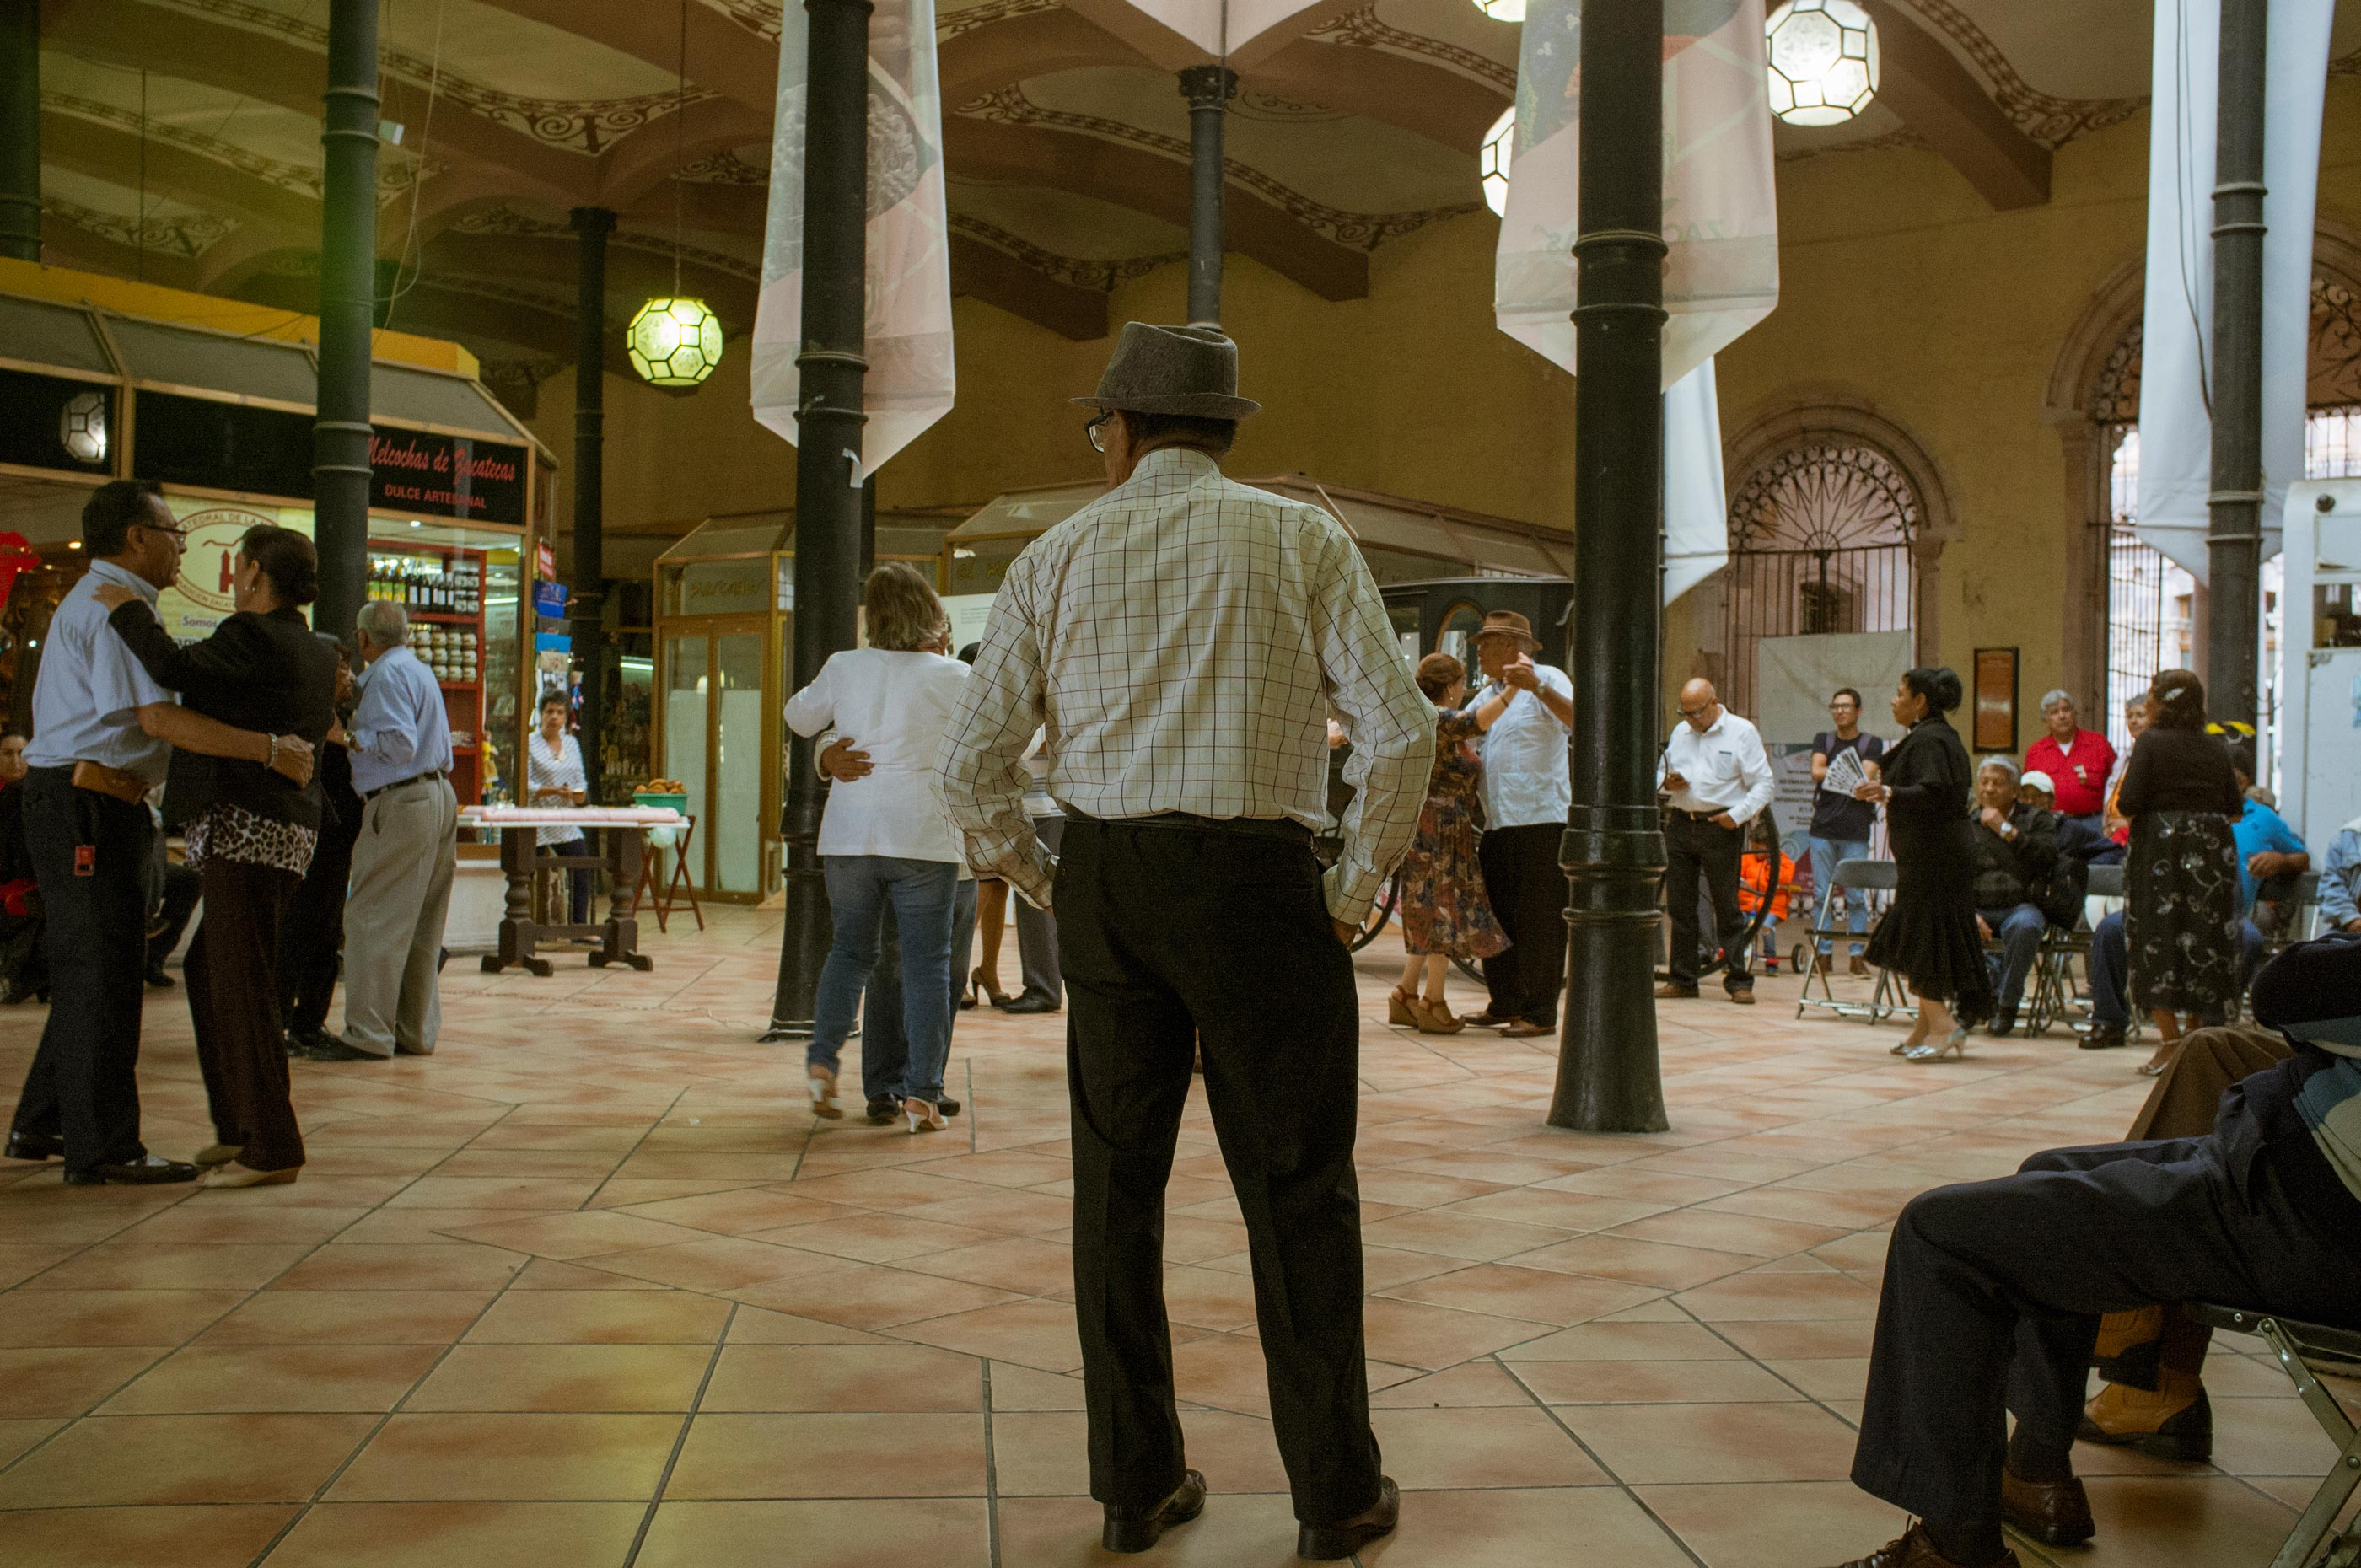 People dancing under the arches in a market in Zacatecas.